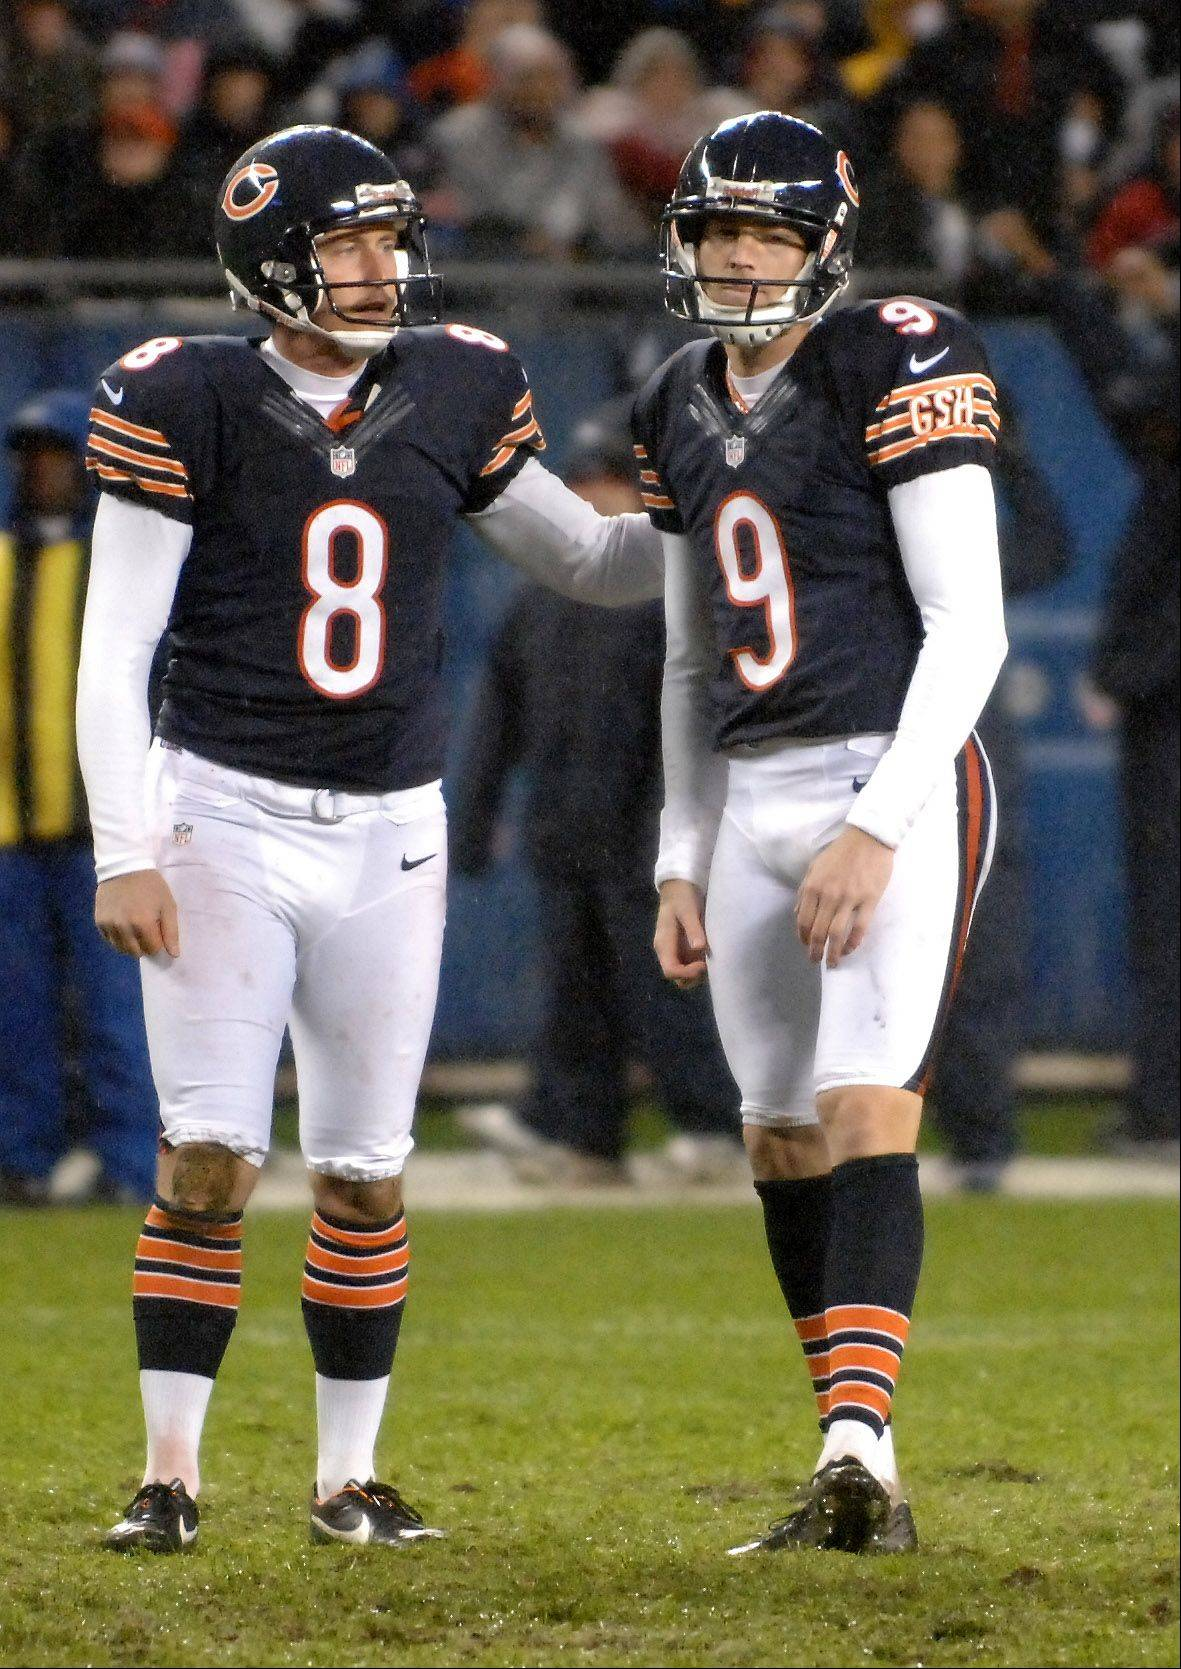 Chicago Bears kicker Robbie Gould (9) is patted on the back by holder Adam Podlesh (8) after missing a field goal.